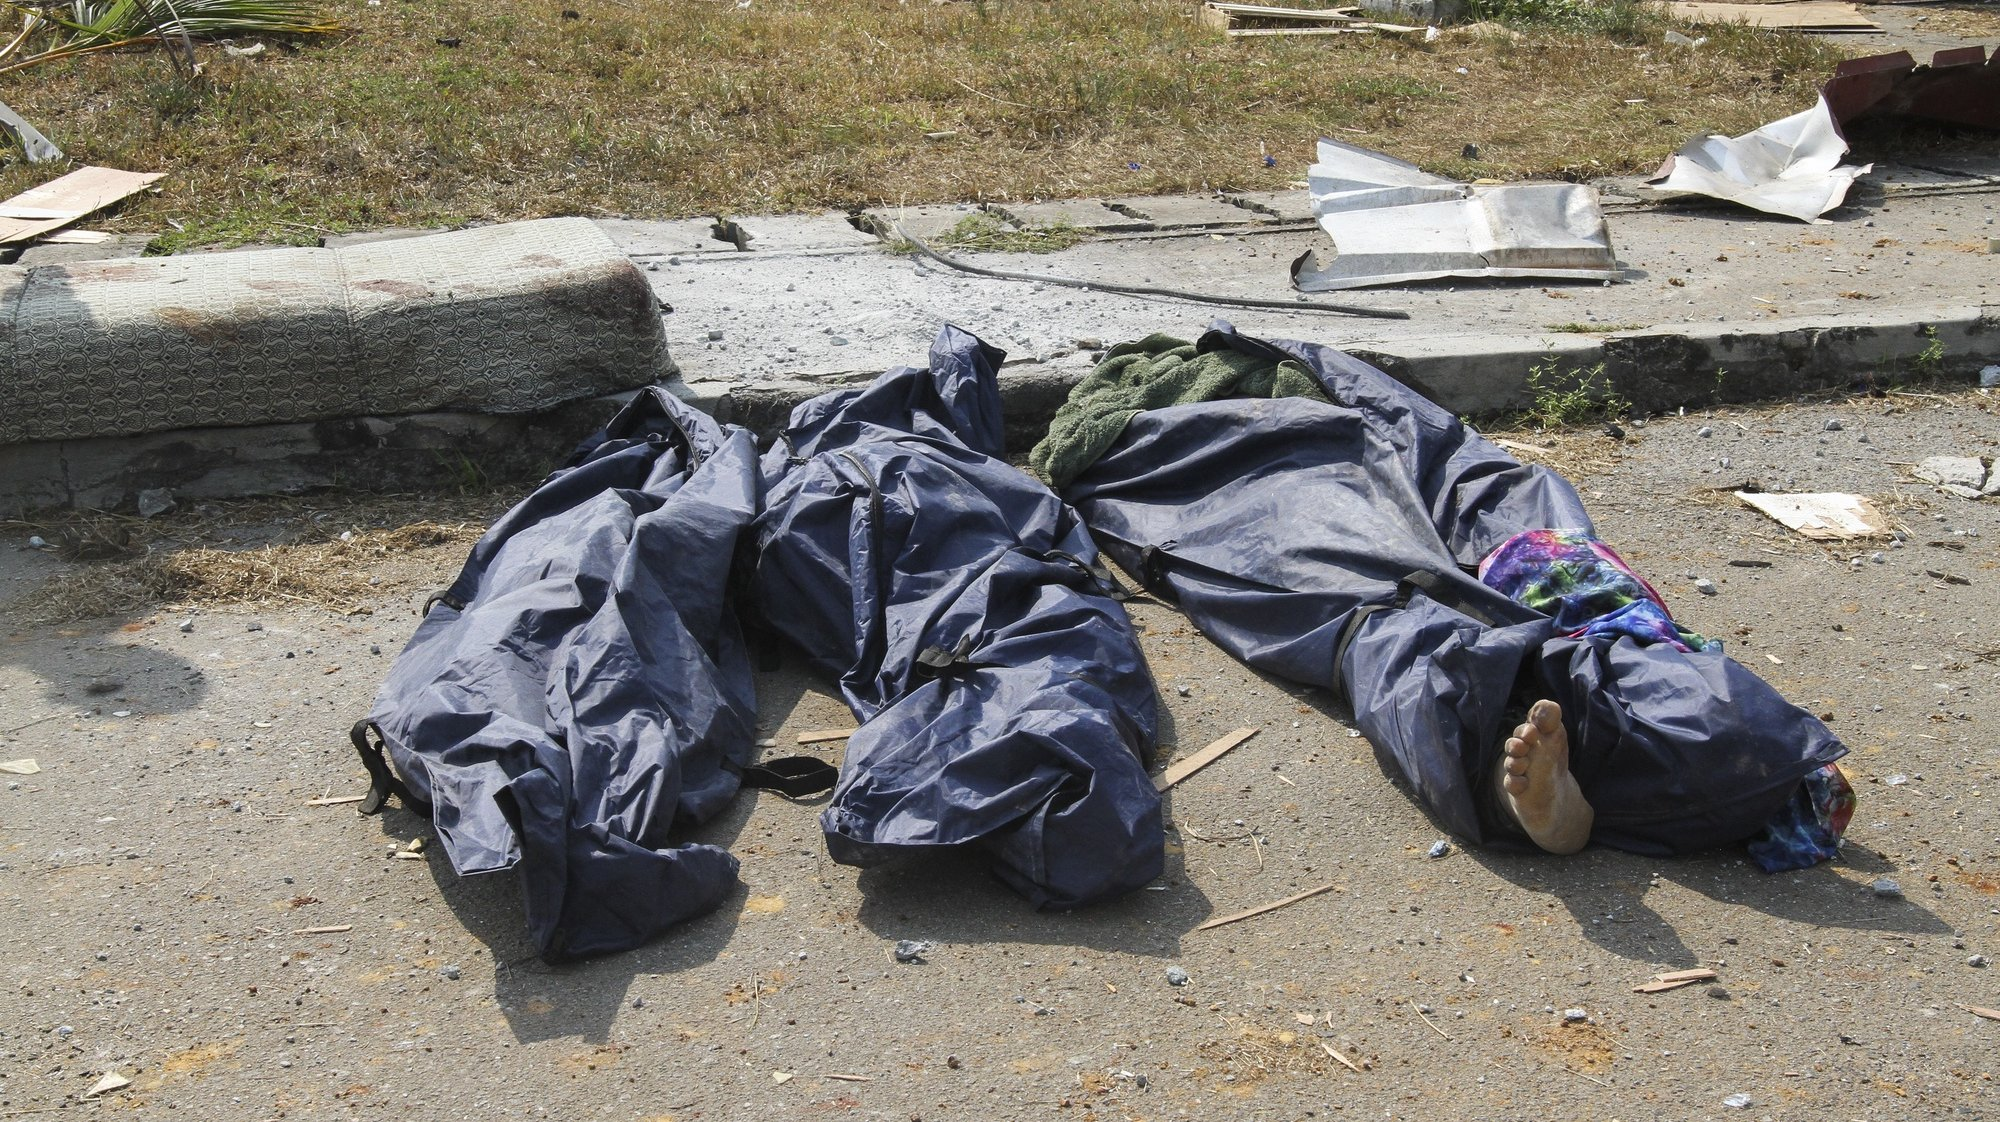 epa09062161 Bodies in body bags at the scene of the aftermath of an explosion in Bata, Equatorial Guinea, 08 March 2021. According to President Teodoro Obiang Nguema huge damage occured when a dynamite storage facility exploded in the port city of Bata on 07 March 2021. According to the Equatorial Guinea health ministry there is an initial count of 20 dead and 420 injured people are being treated in hospitals.  EPA/JOSE LUIS ABECARA AGUESOMO ATTENTION EDITORS: GRAPHIC CONTENT